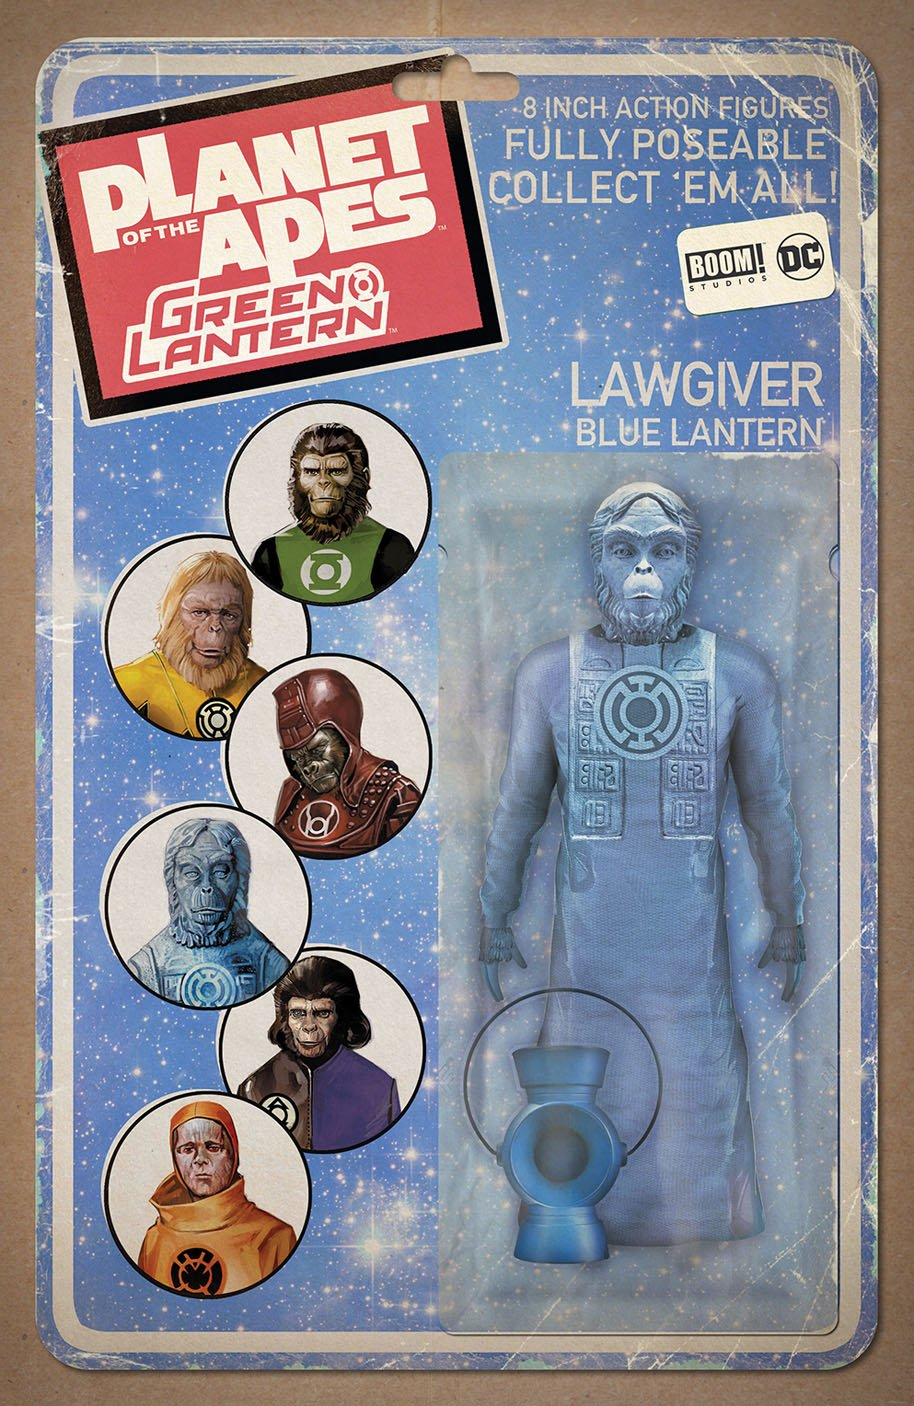 Planet of the Apes Green Lantern 4 Action Figure Variant E